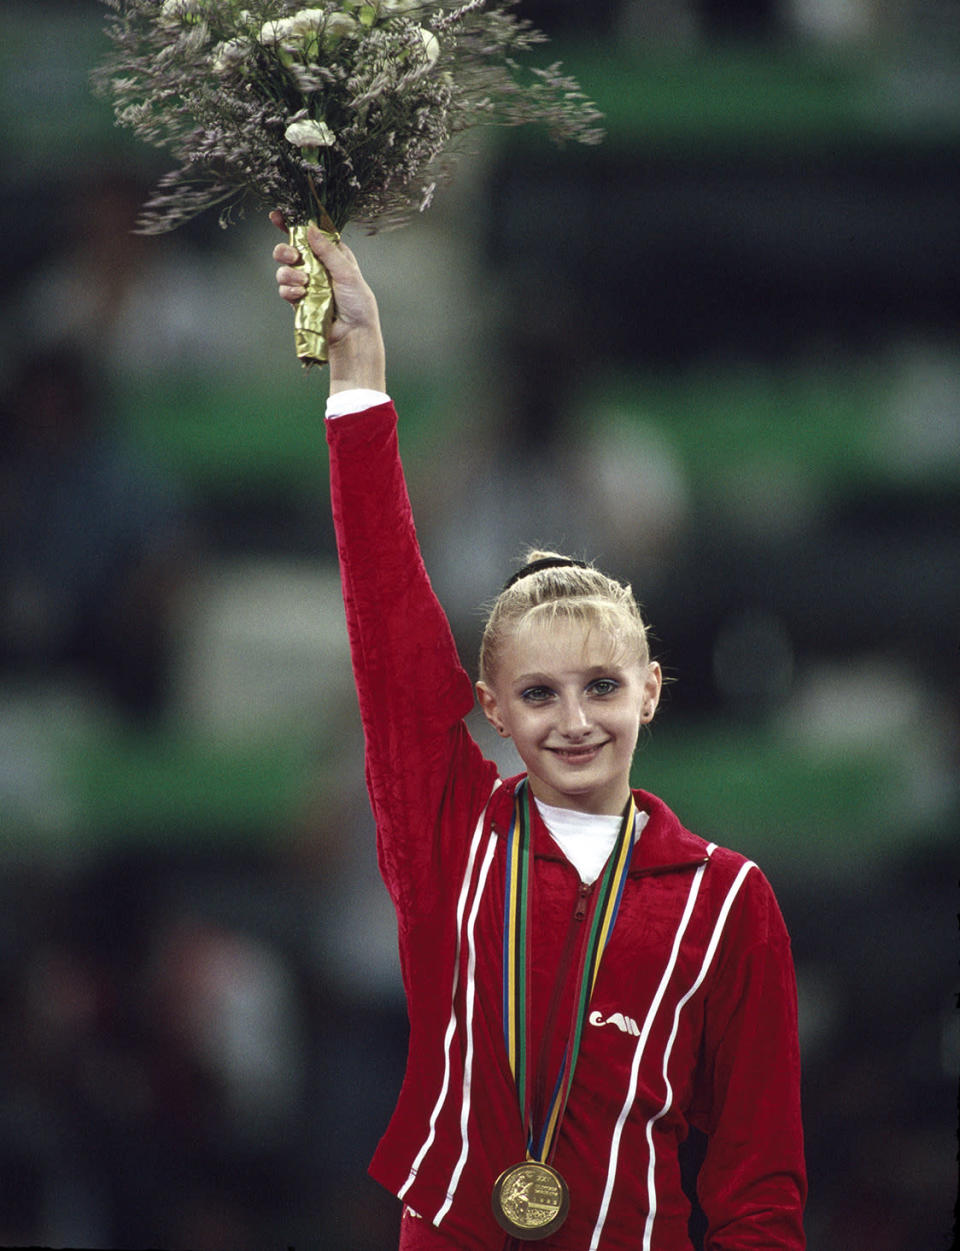 <p>Ukranian gymnast Tatiana Gutsu of the Unified Team (formerly Soviet Union) celebrates on the medal podium after receiving her gold medal at the 1992 Summer Olympics in Barcelona. (Photo by Bob Thomas/Getty Images) </p>